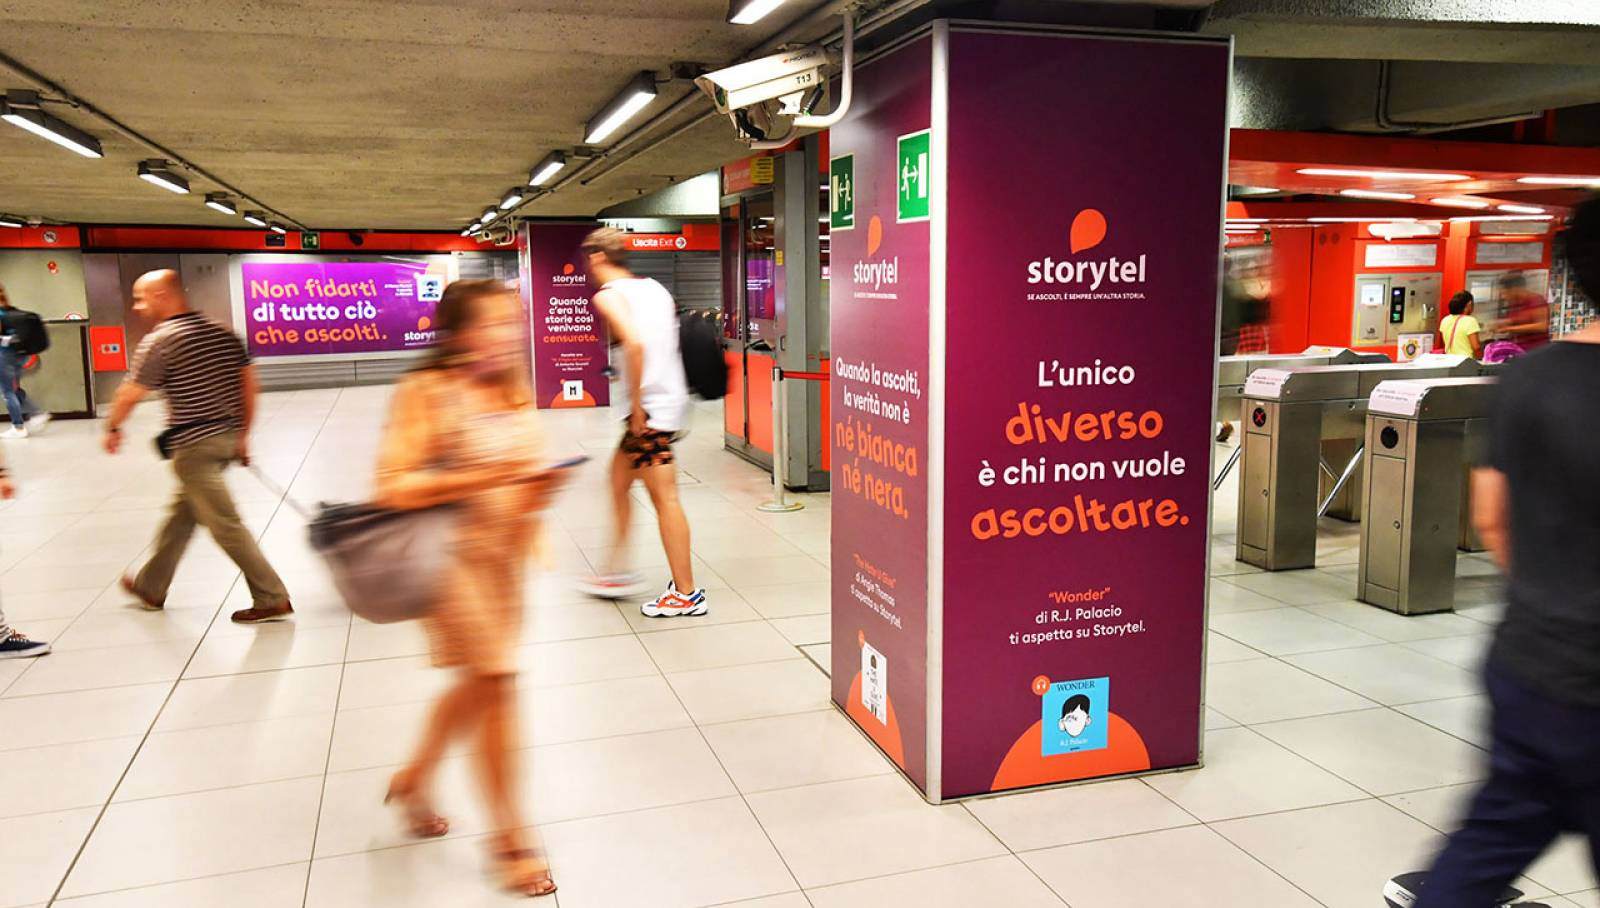 OOH advertising IGPDecaux Milan Station Domination for Storytel